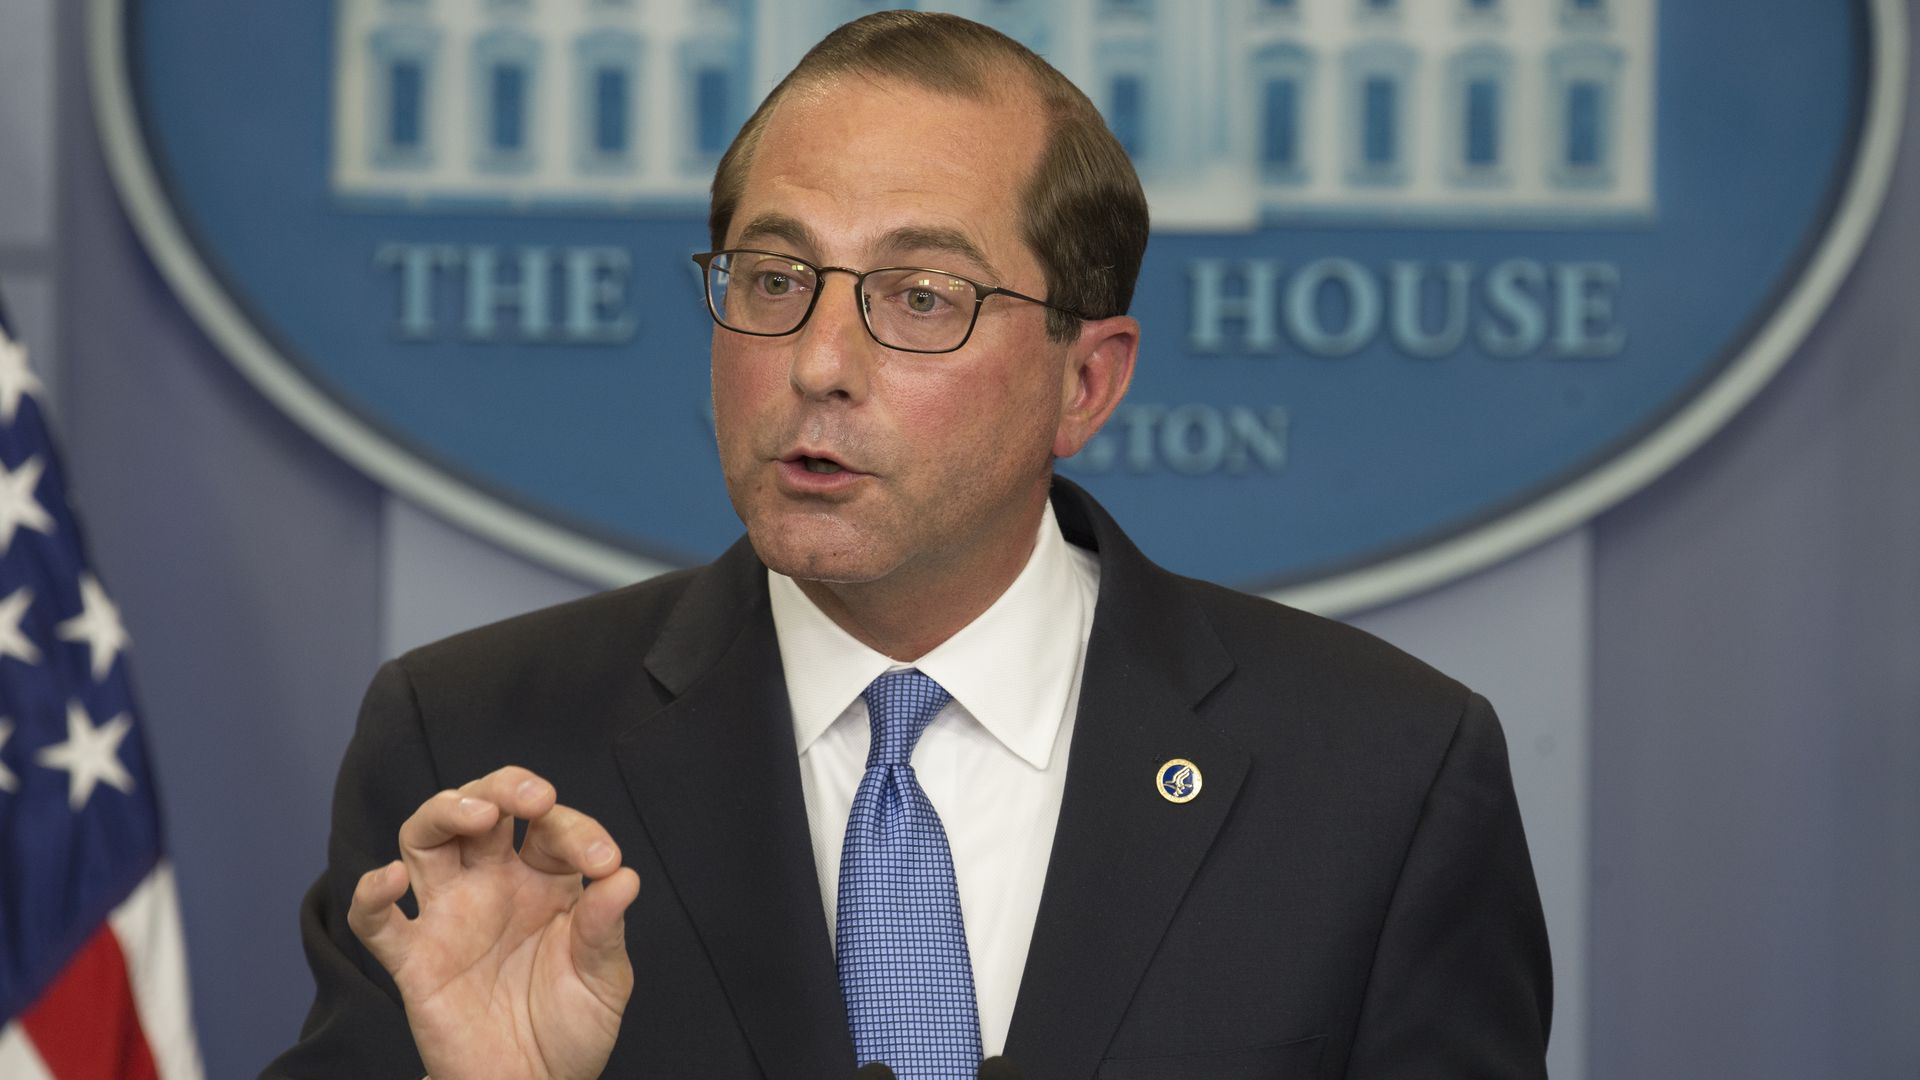 HHS Secretary Alex Azar briefs reporters at the White House.